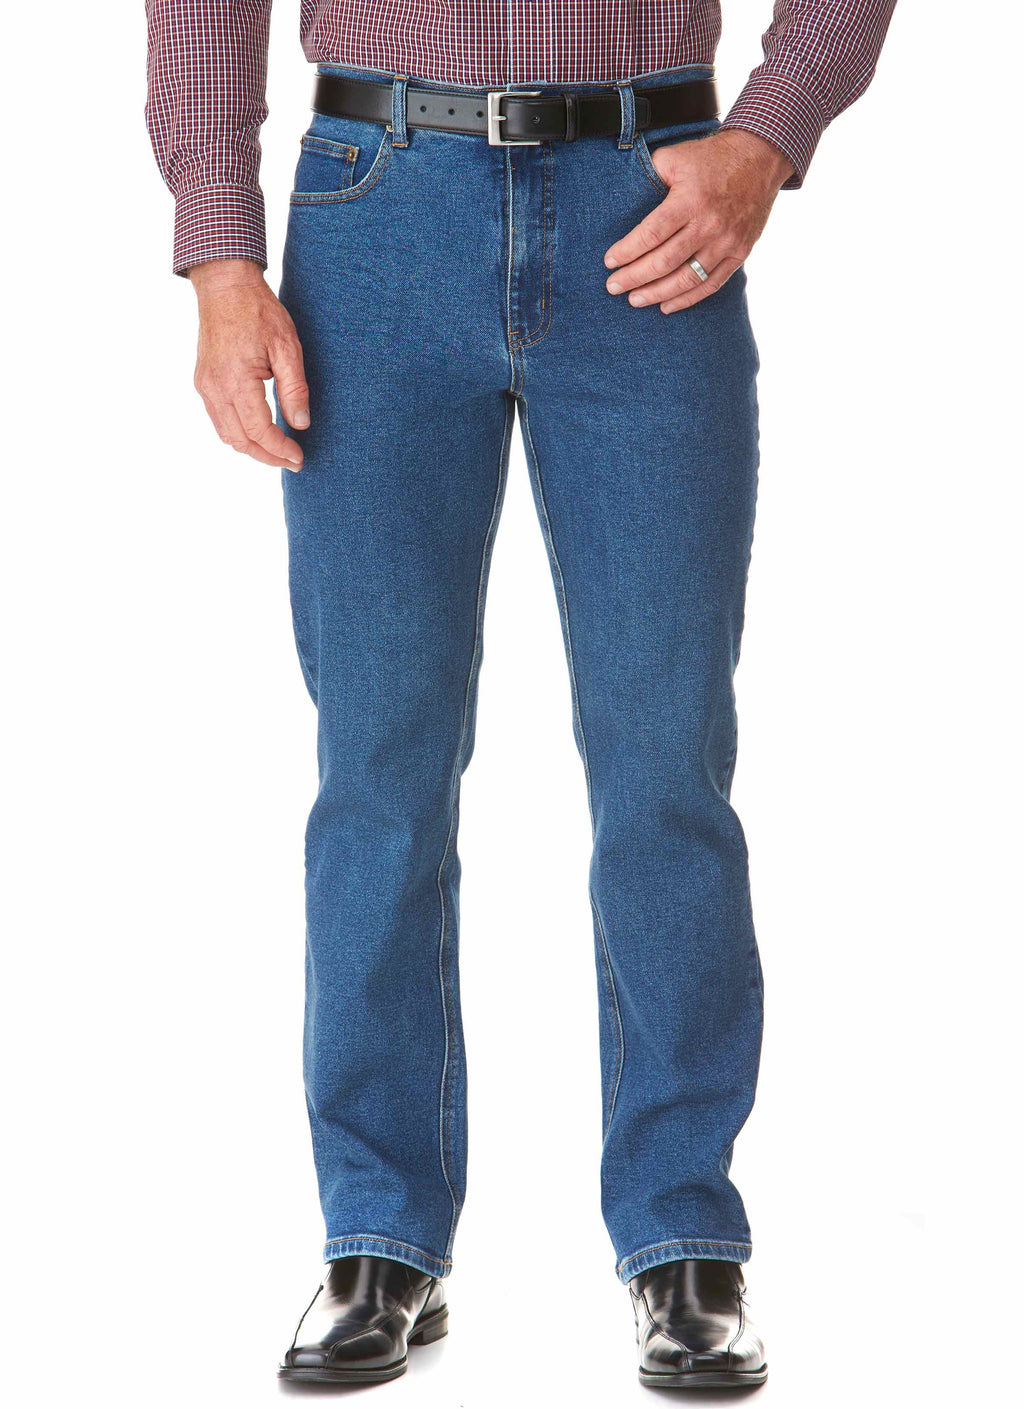 ELLISTON STRETCH JEAN